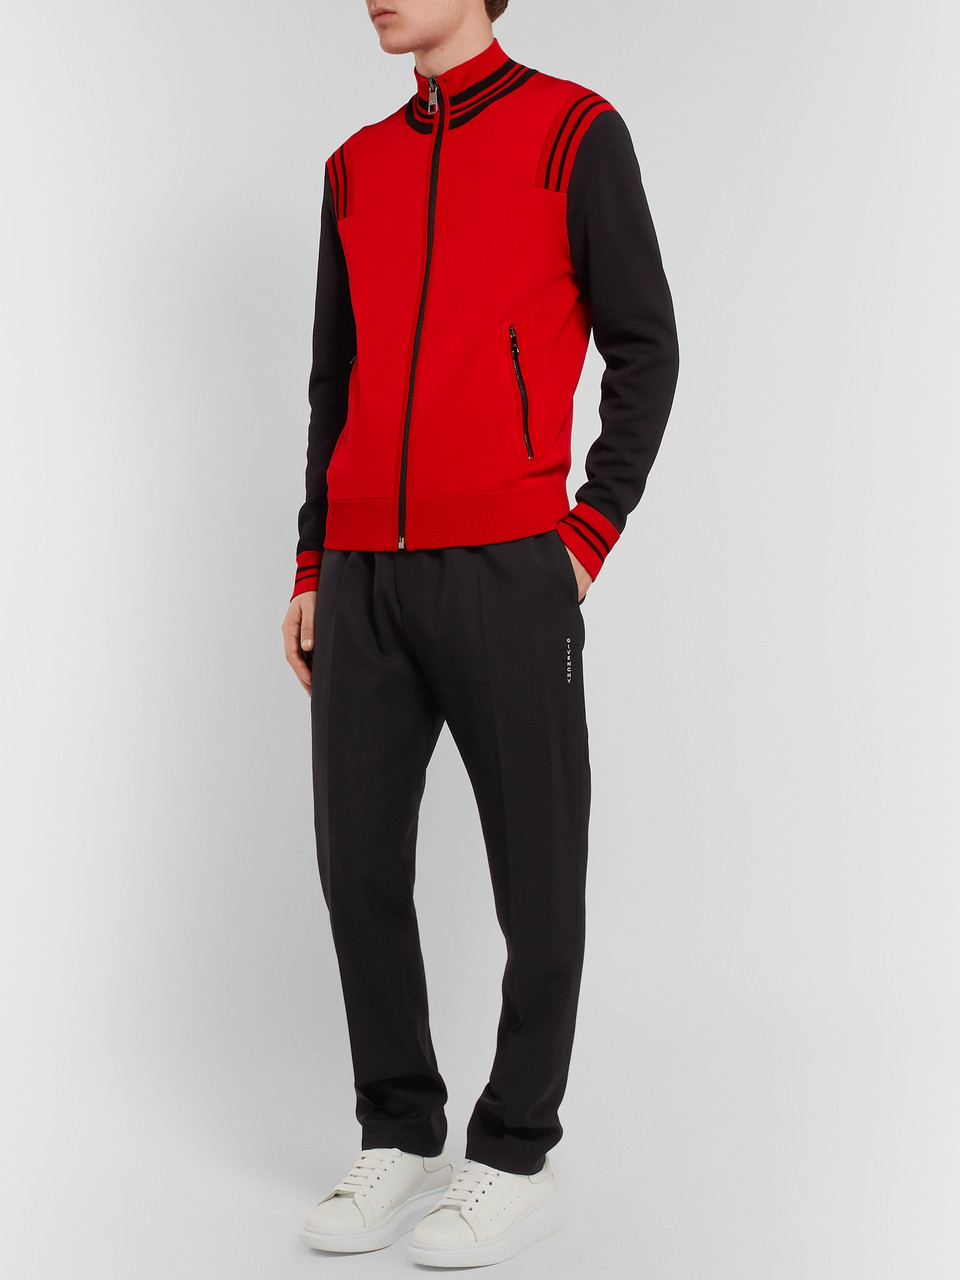 Neil Barrett Colour-Block Stretch-Knit Zip-Up Sweatshirt